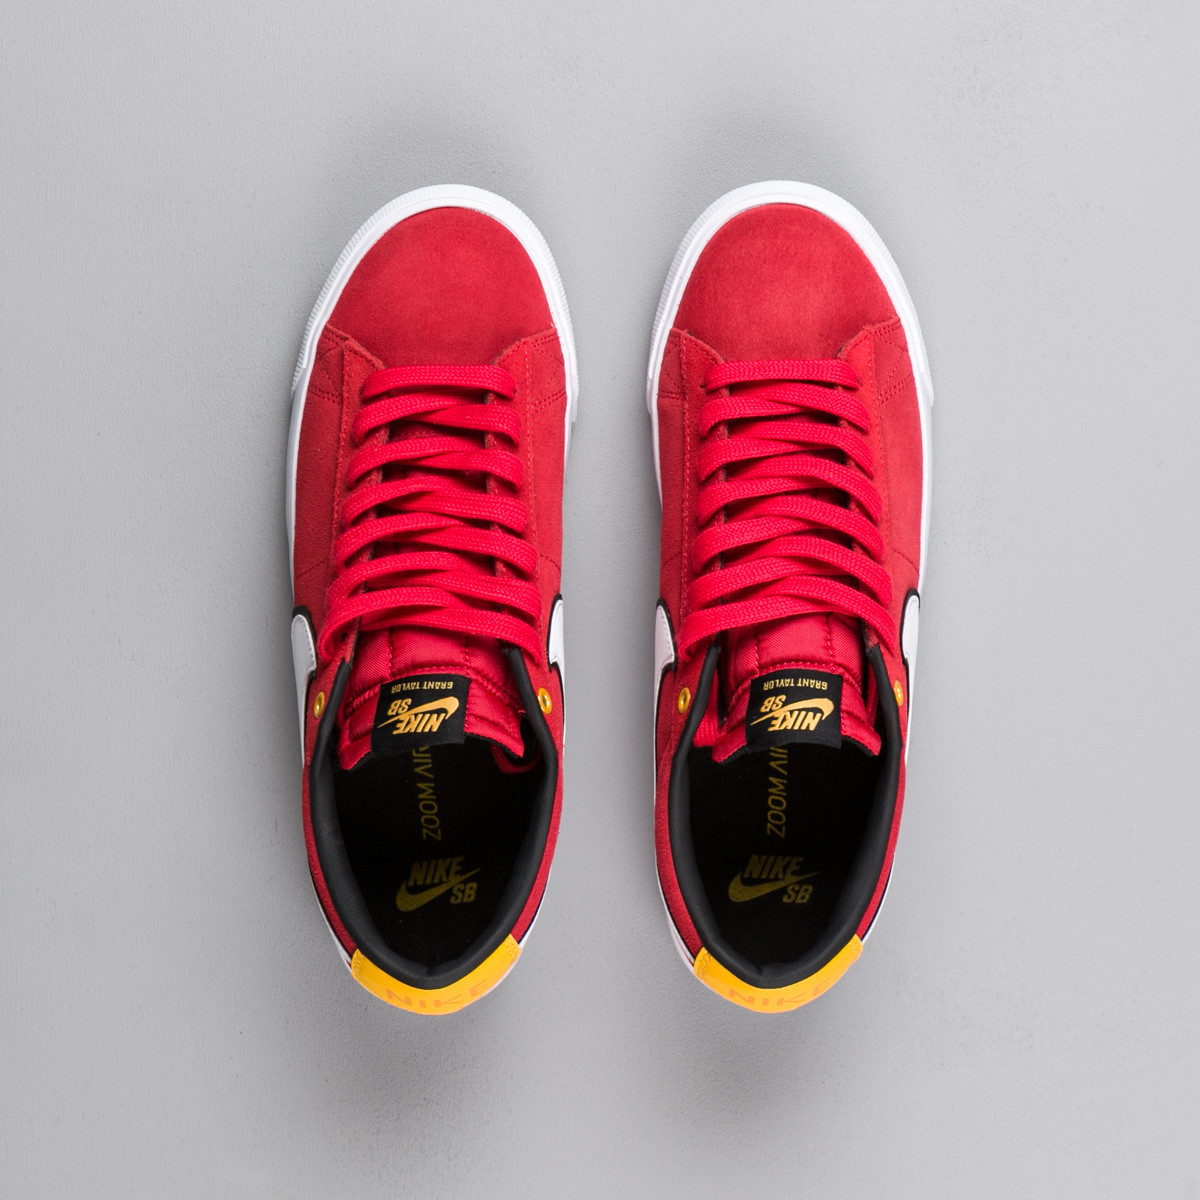 size 40 4da8f 657d6 ... university red. Nike Blazer Low GT QS Men s SB skateboard shoes 716890  001 multiple sizes